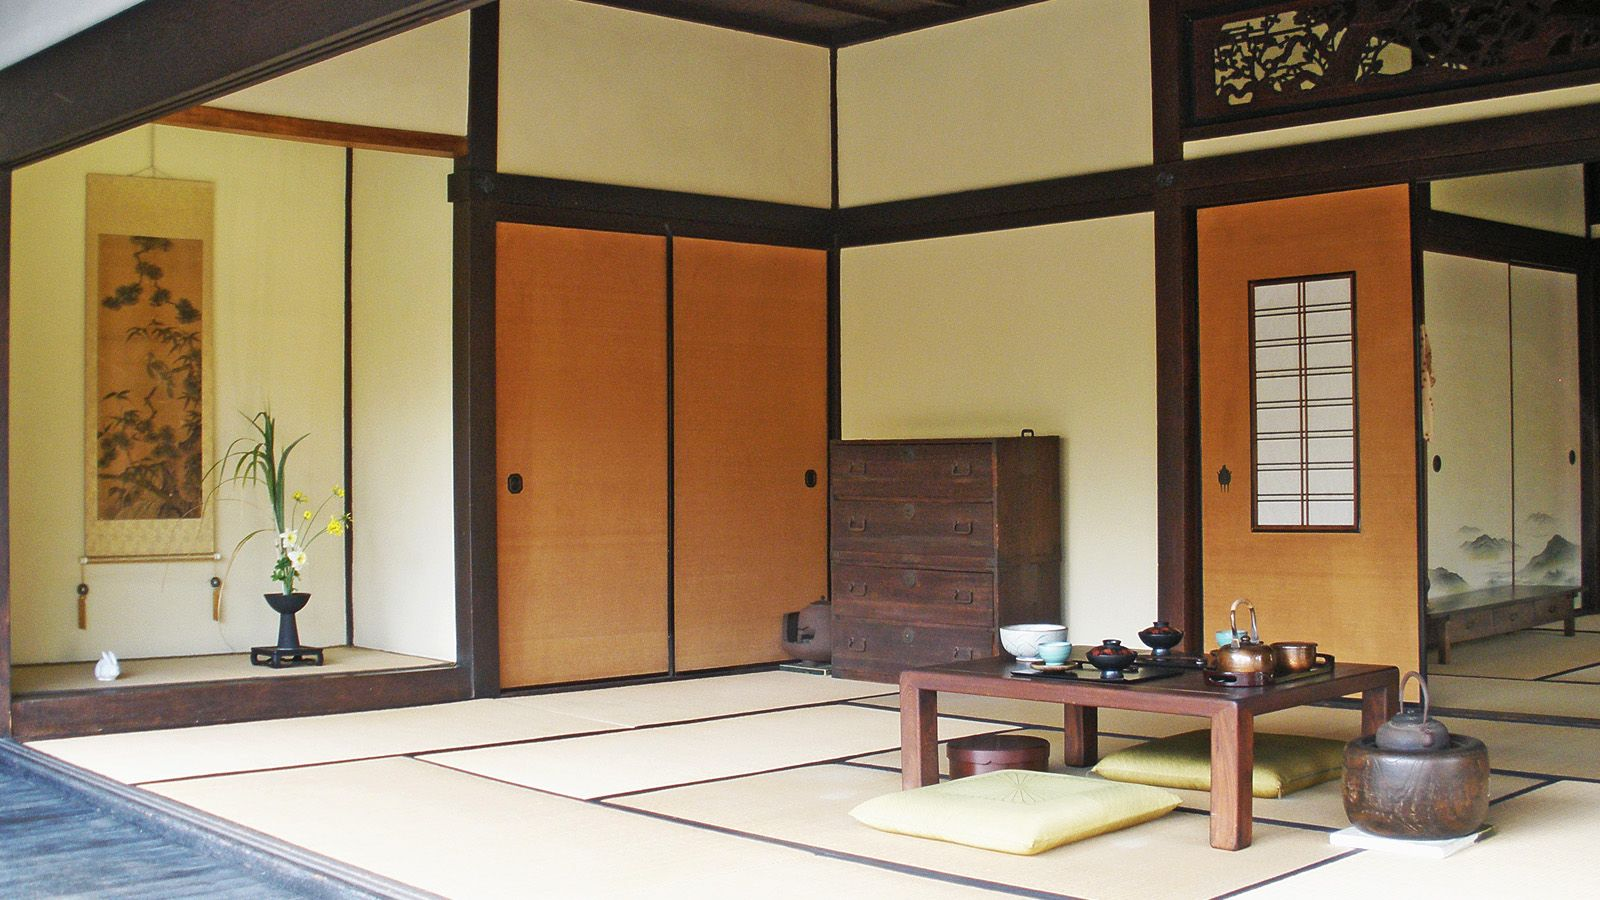 Traditional japanese house bedroom - House Traditional Japanese